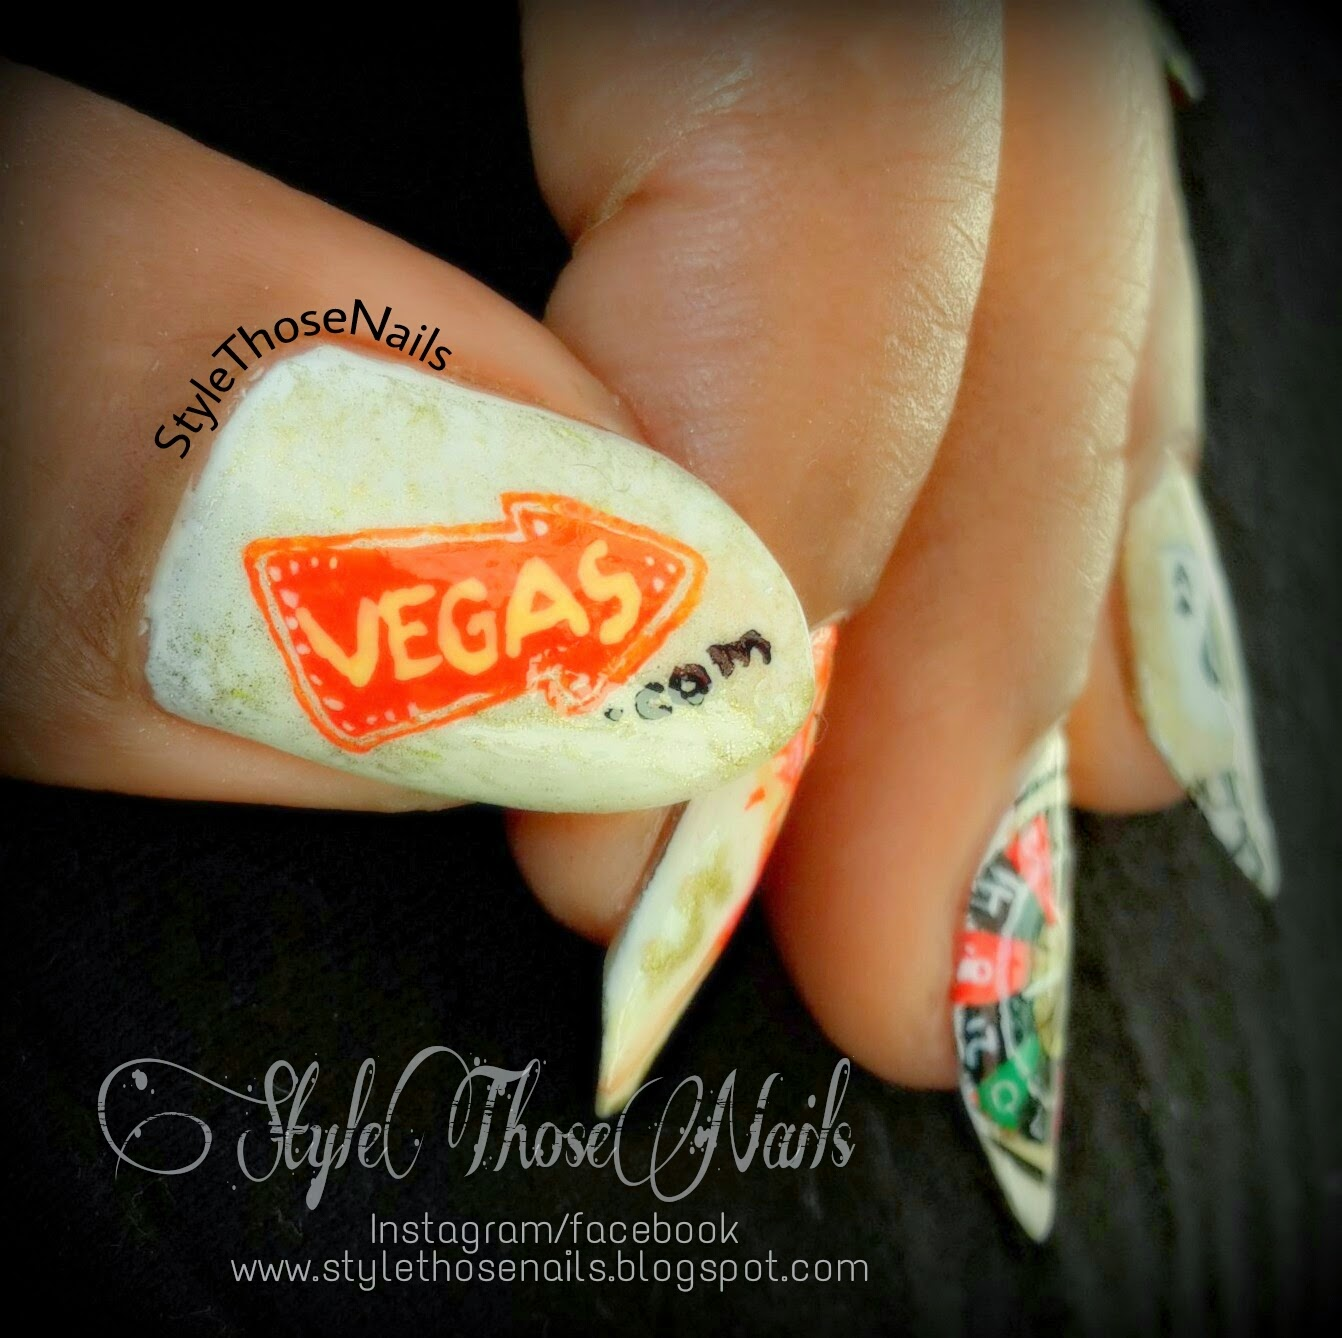 Style those nails night out in vegas a las vegas themed nail art night out in vegas a las vegas themed nail art prinsesfo Gallery